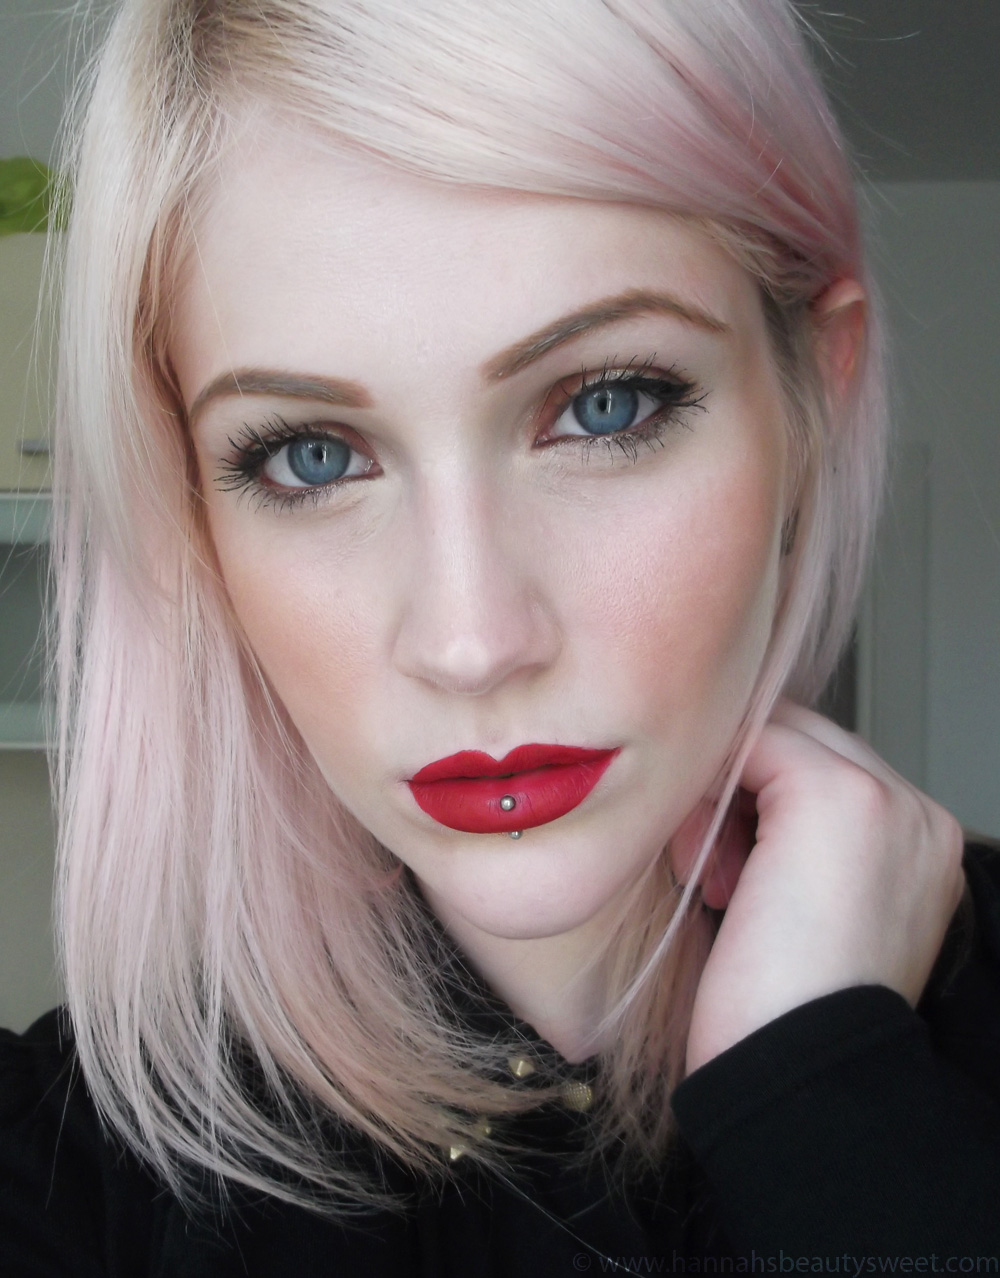 Lips, matte lipstick, matte lips, Topshop, Velvet lips, The Damned, swatch, red lips, girl, blonde, red lipstick